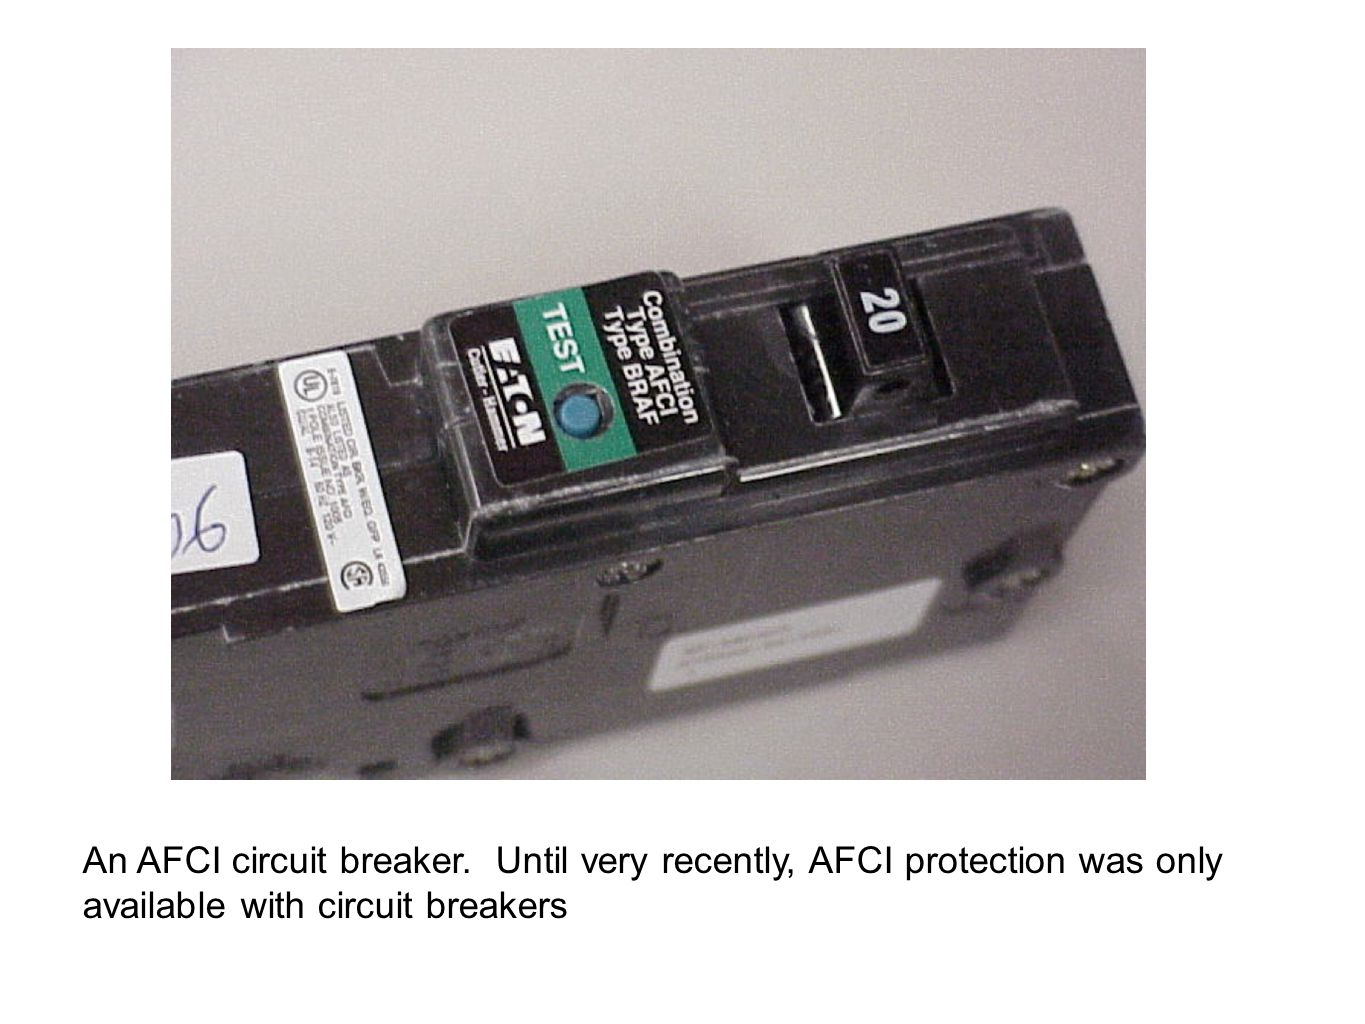 An AFCI circuit breaker. Until very recently, AFCI protection was only available with circuit breakers